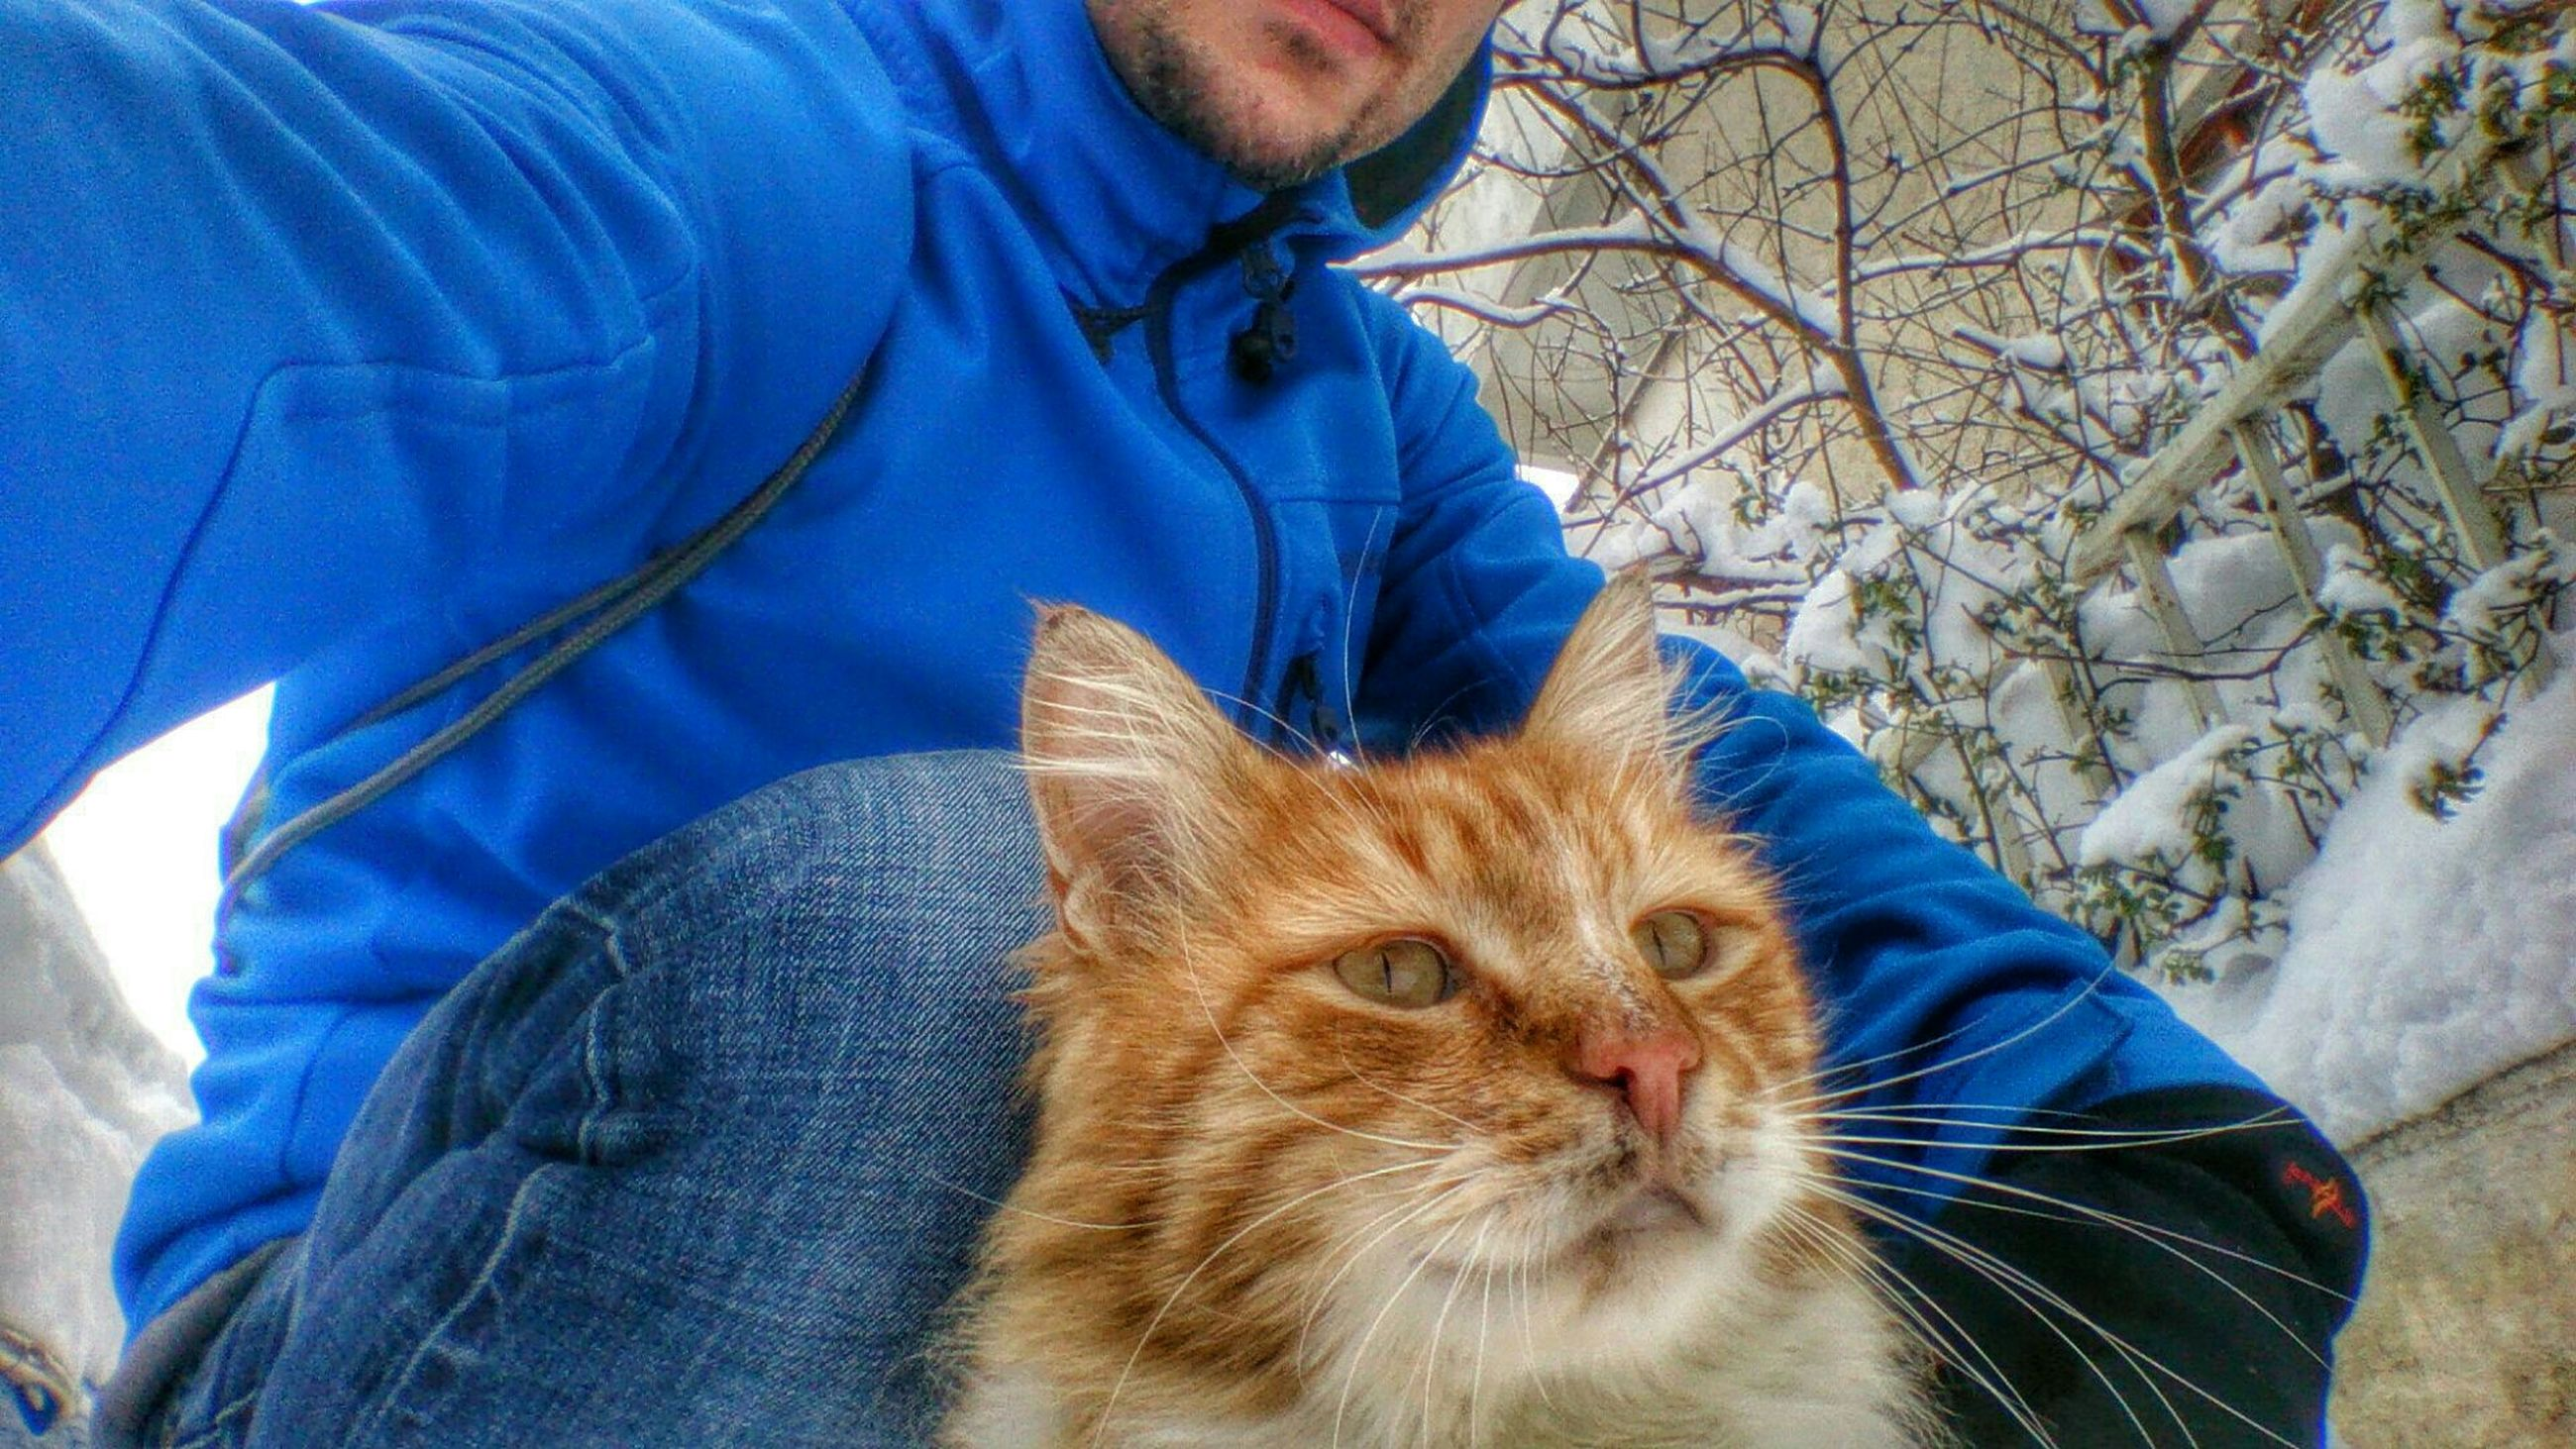 pets, one animal, mammal, domestic animals, lifestyles, animal themes, leisure activity, casual clothing, men, standing, jeans, warm clothing, pet owner, domestic cat, low section, portrait, day, rear view